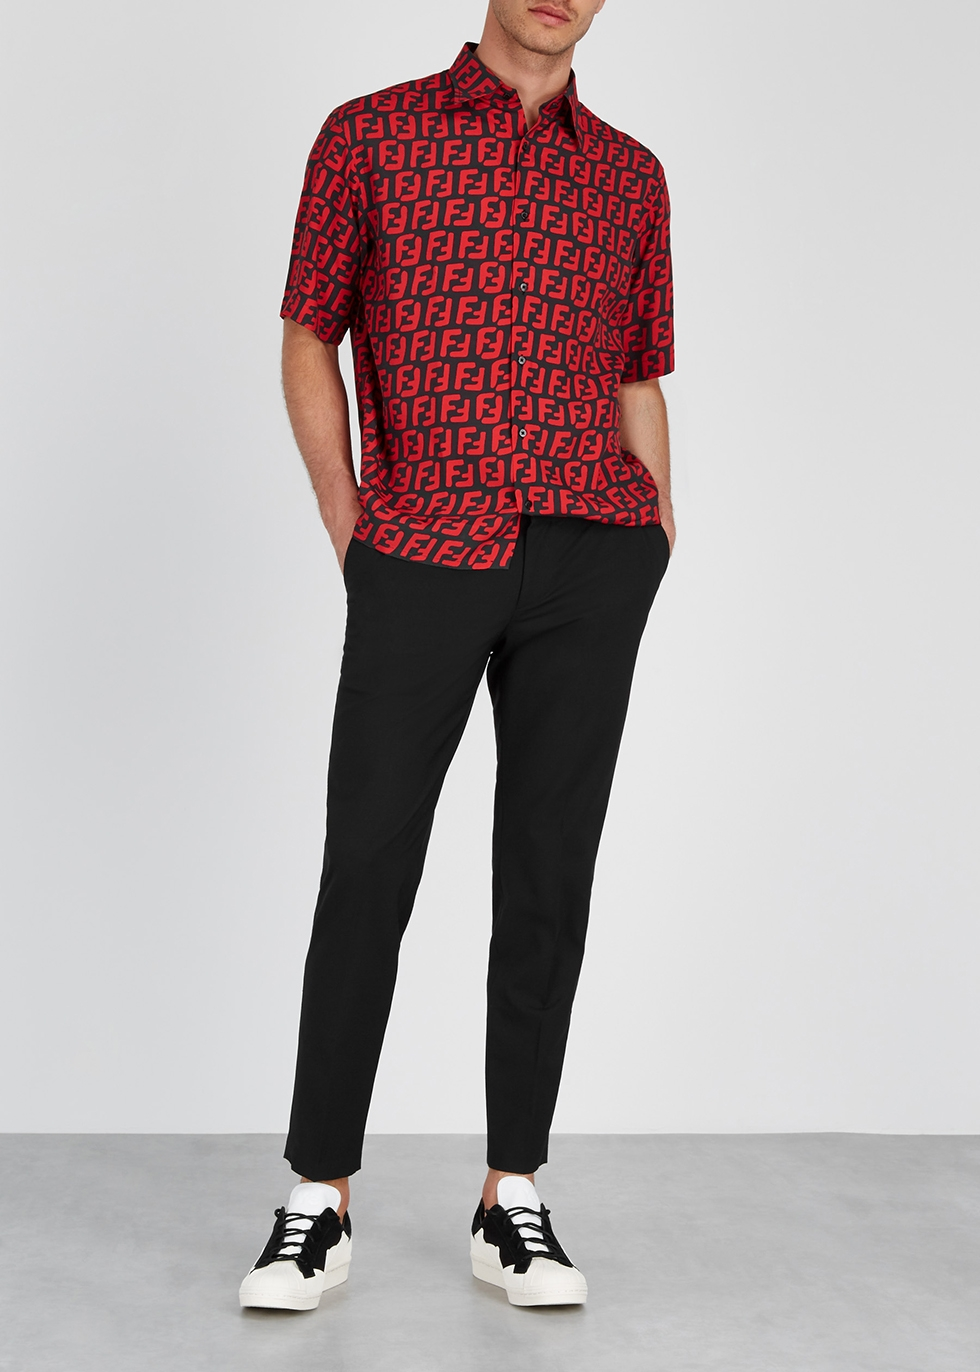 Black and red logo-print shirt - Fendi